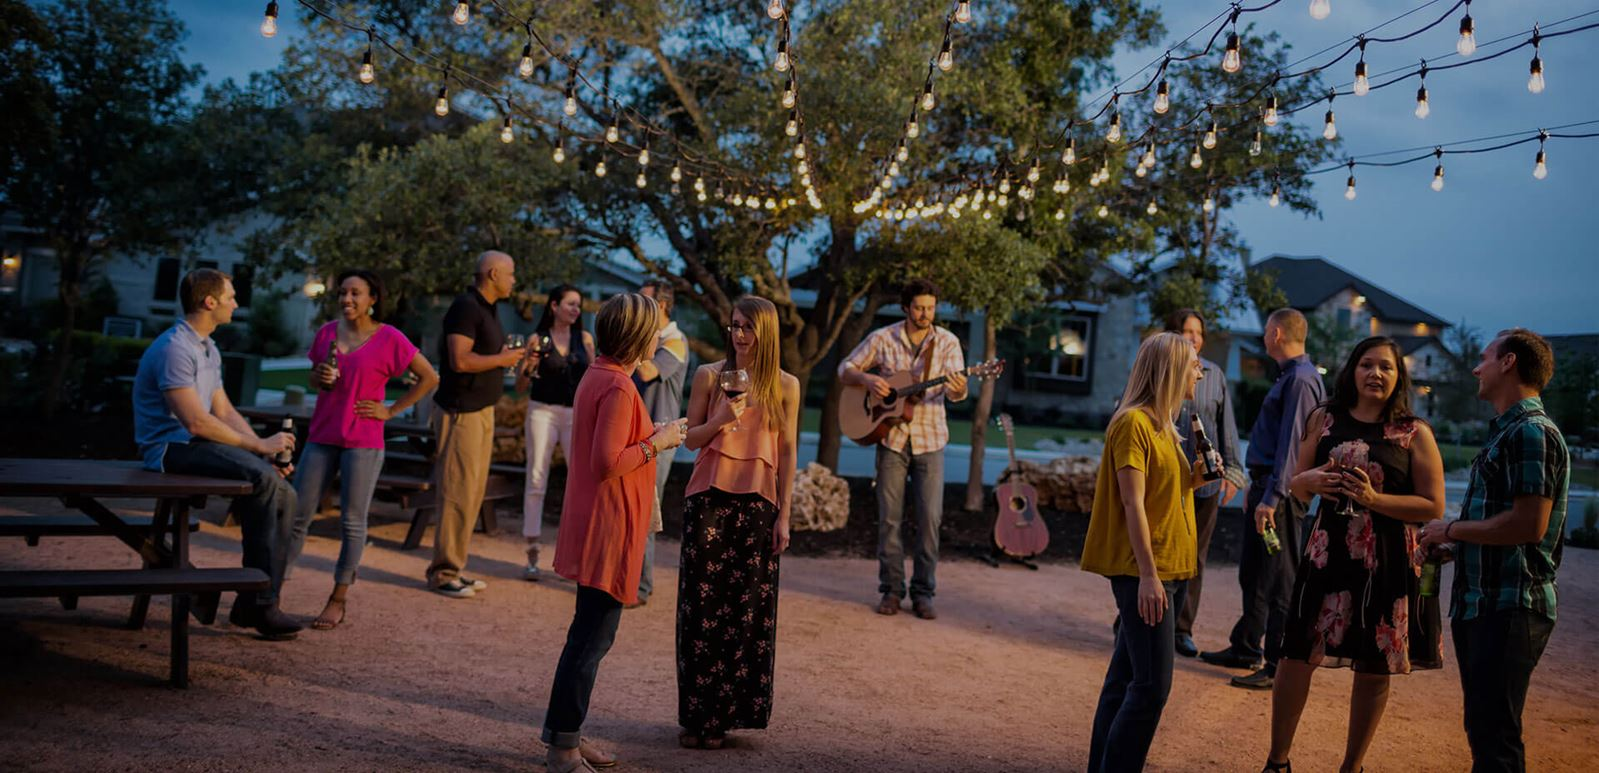 Rancho Sienna residents attend live acoustic music event